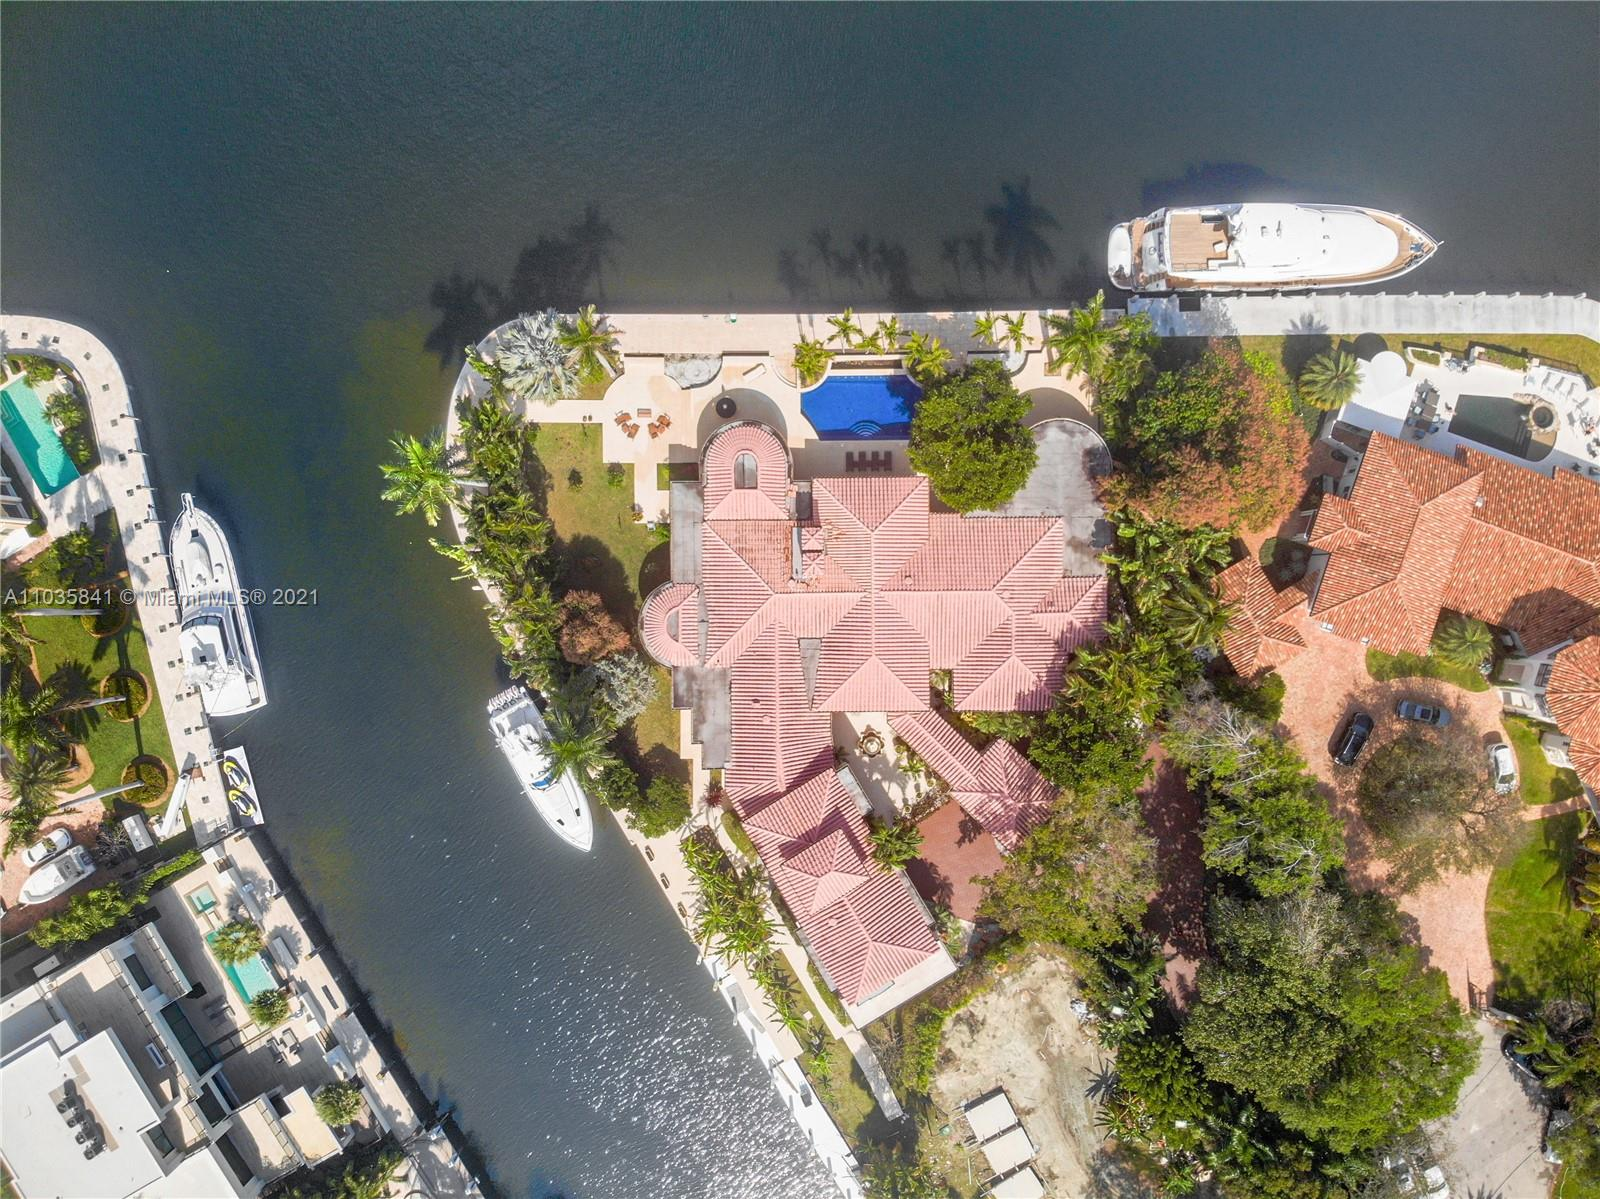 One- of- a- kind private point lot estate in Las Olas. 550 feet of deep and wide protected waterfront on the Rio Barcelona. Can easily fit a mega-yacht of 200 feet or more. Sitting on 1.14 secluded acres, located on the most desired street in Las Olas. This home has 7 bedrooms, 7 1/2 baths and it offers 10,000 square feet of European style and elegance, Soaring Ceilings, large fire place, billiards room, bar and lounge. Outside is a semi-enclosed lounge and outdoor dining area overlooking the water and gardens. The kitchen is designed for a professional chef. The huge first floor master suite and private office open to the pool. 2300 Aqua Vista offers quick ocean access and walking distance to the beach and Las Olas night life.*** PRICE IS WEEKLY***